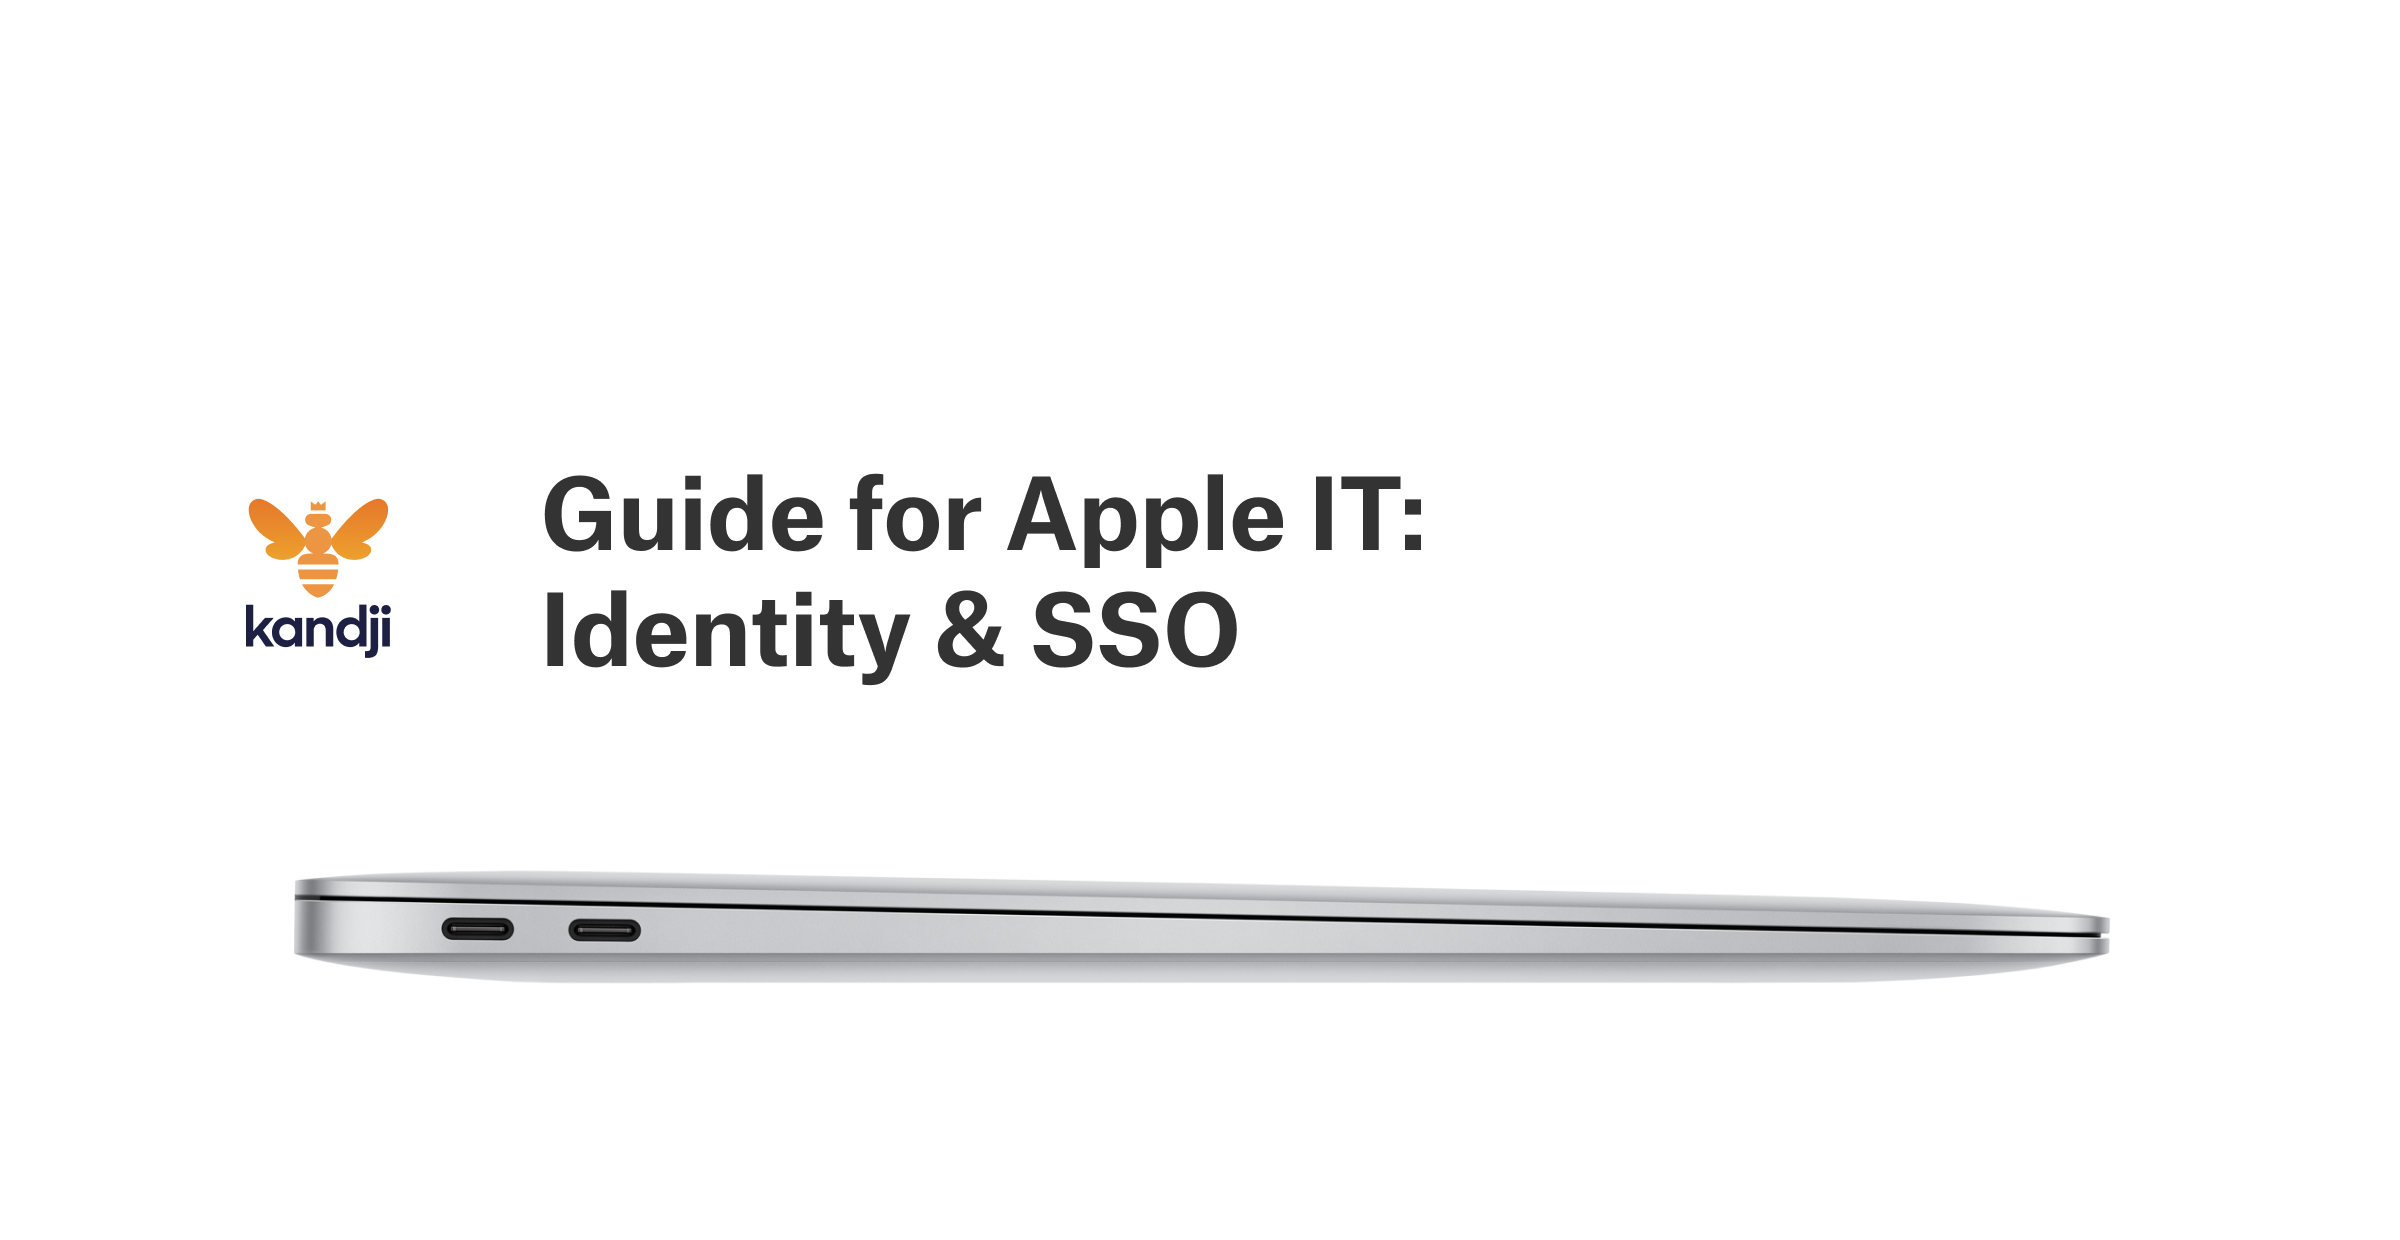 guide for apple IT mac identity management and catalina SSO